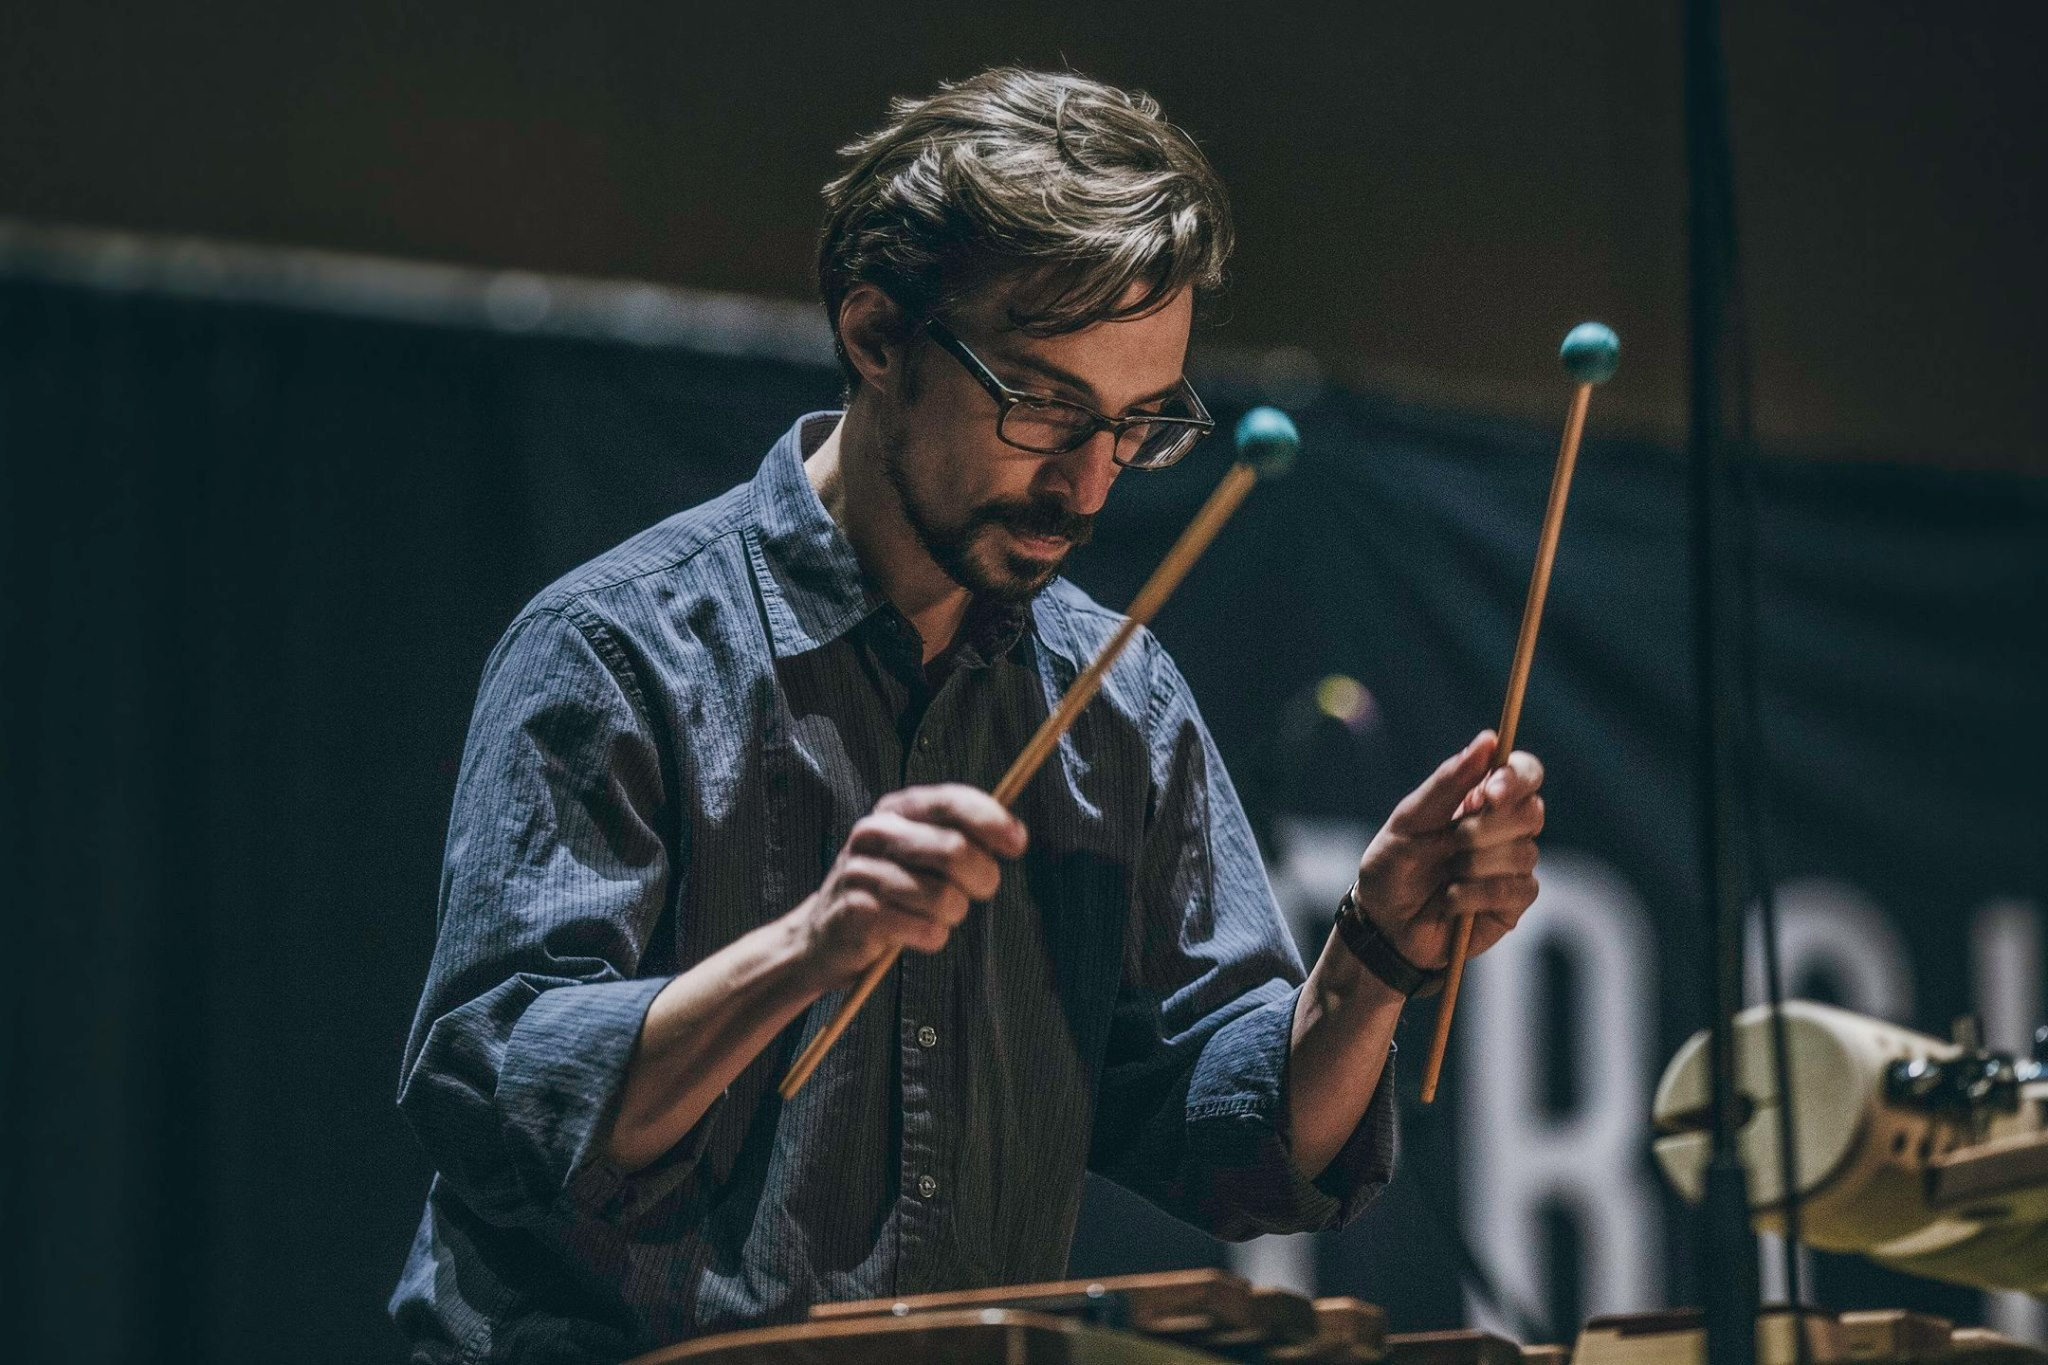 Performing Andriessen's  Woodpecker  at PASIC 2016 in Indianapolis, IN. Photo by Emory Hensley